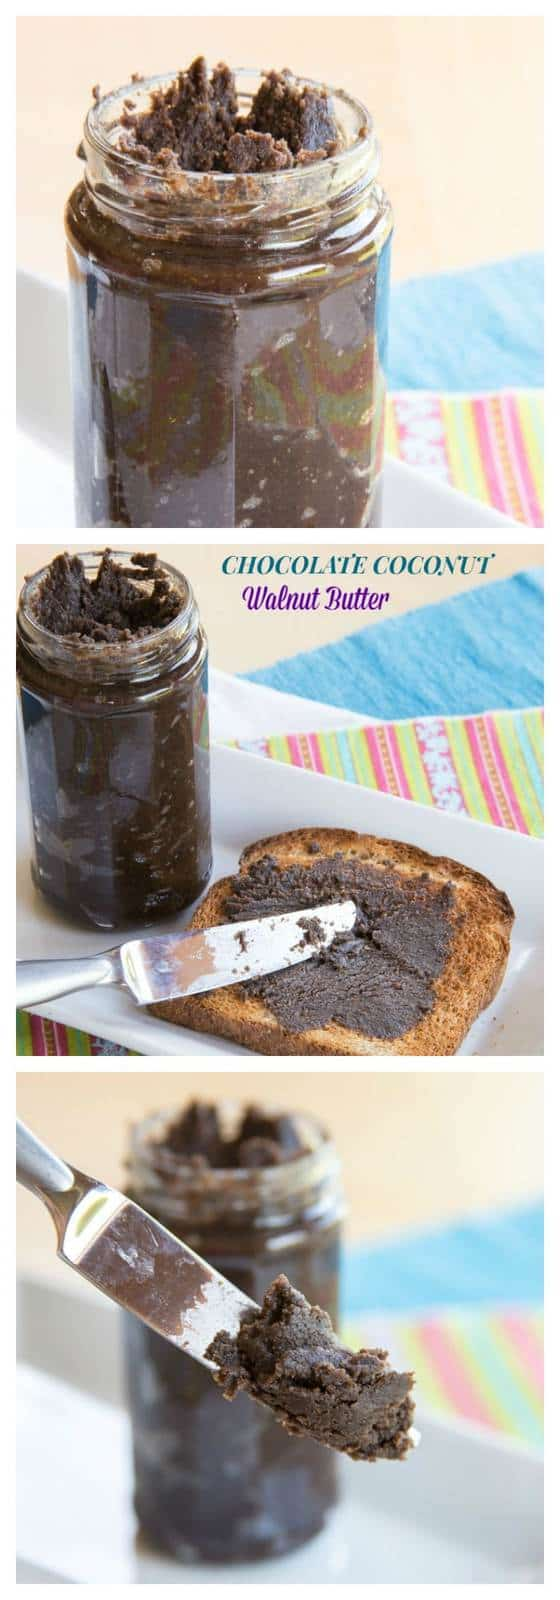 Chocolate Coconut Walnut Butter - add omega 3s, superfoods, antioxidants, and (YAY!) chocolate to your breakfast or afternoon snack. Spread this nut butter on toast, apples, or a spoon! | cupcakesandkalechips.com | gluten free, vegan, paleo recipe